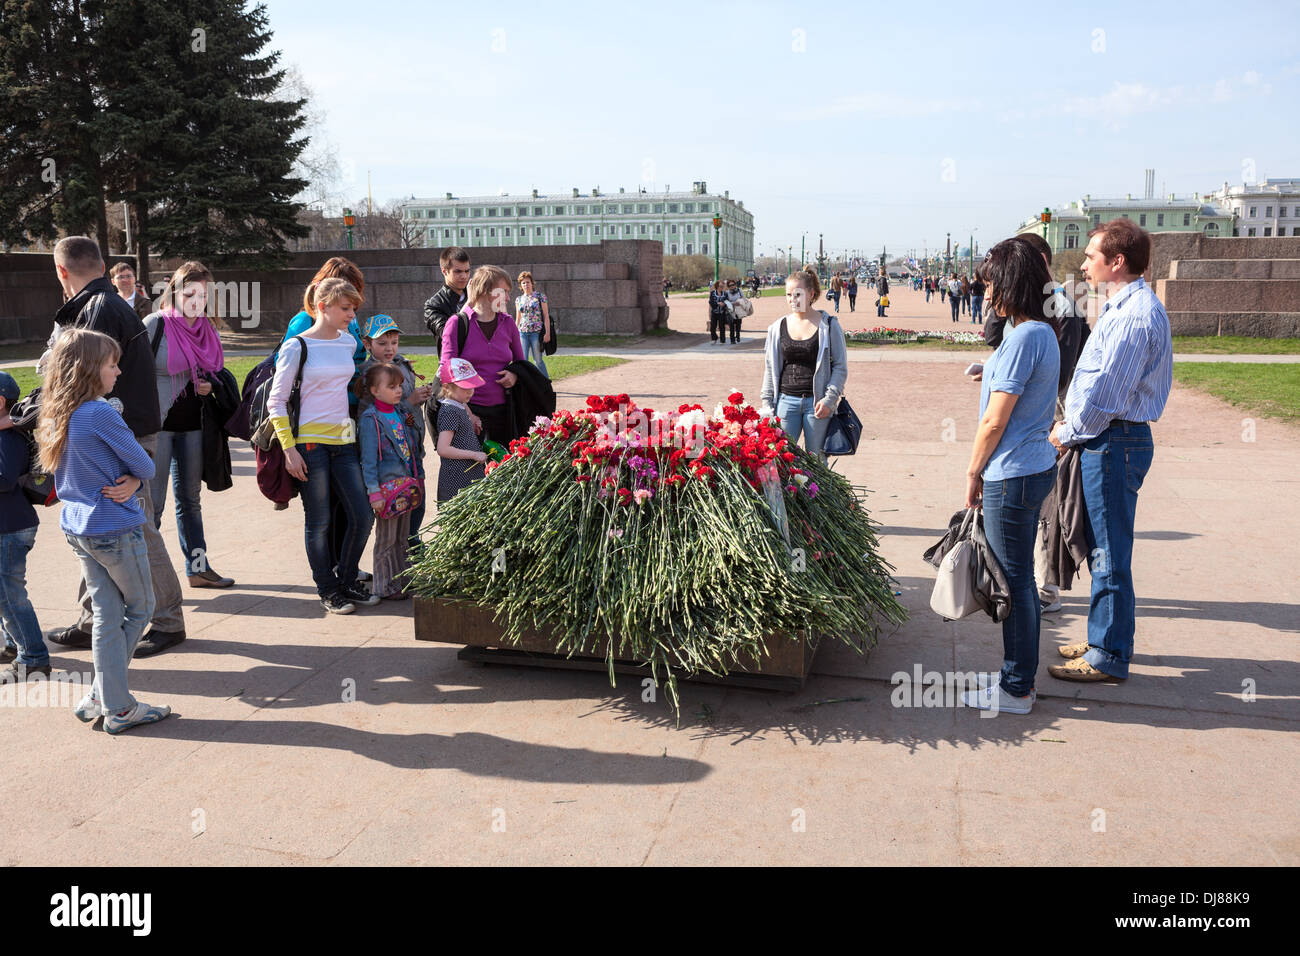 Red carnations around the eternal flame at the Field of Mars in St. Petersburg. Russia. Victory Day, May 9 - Stock Image